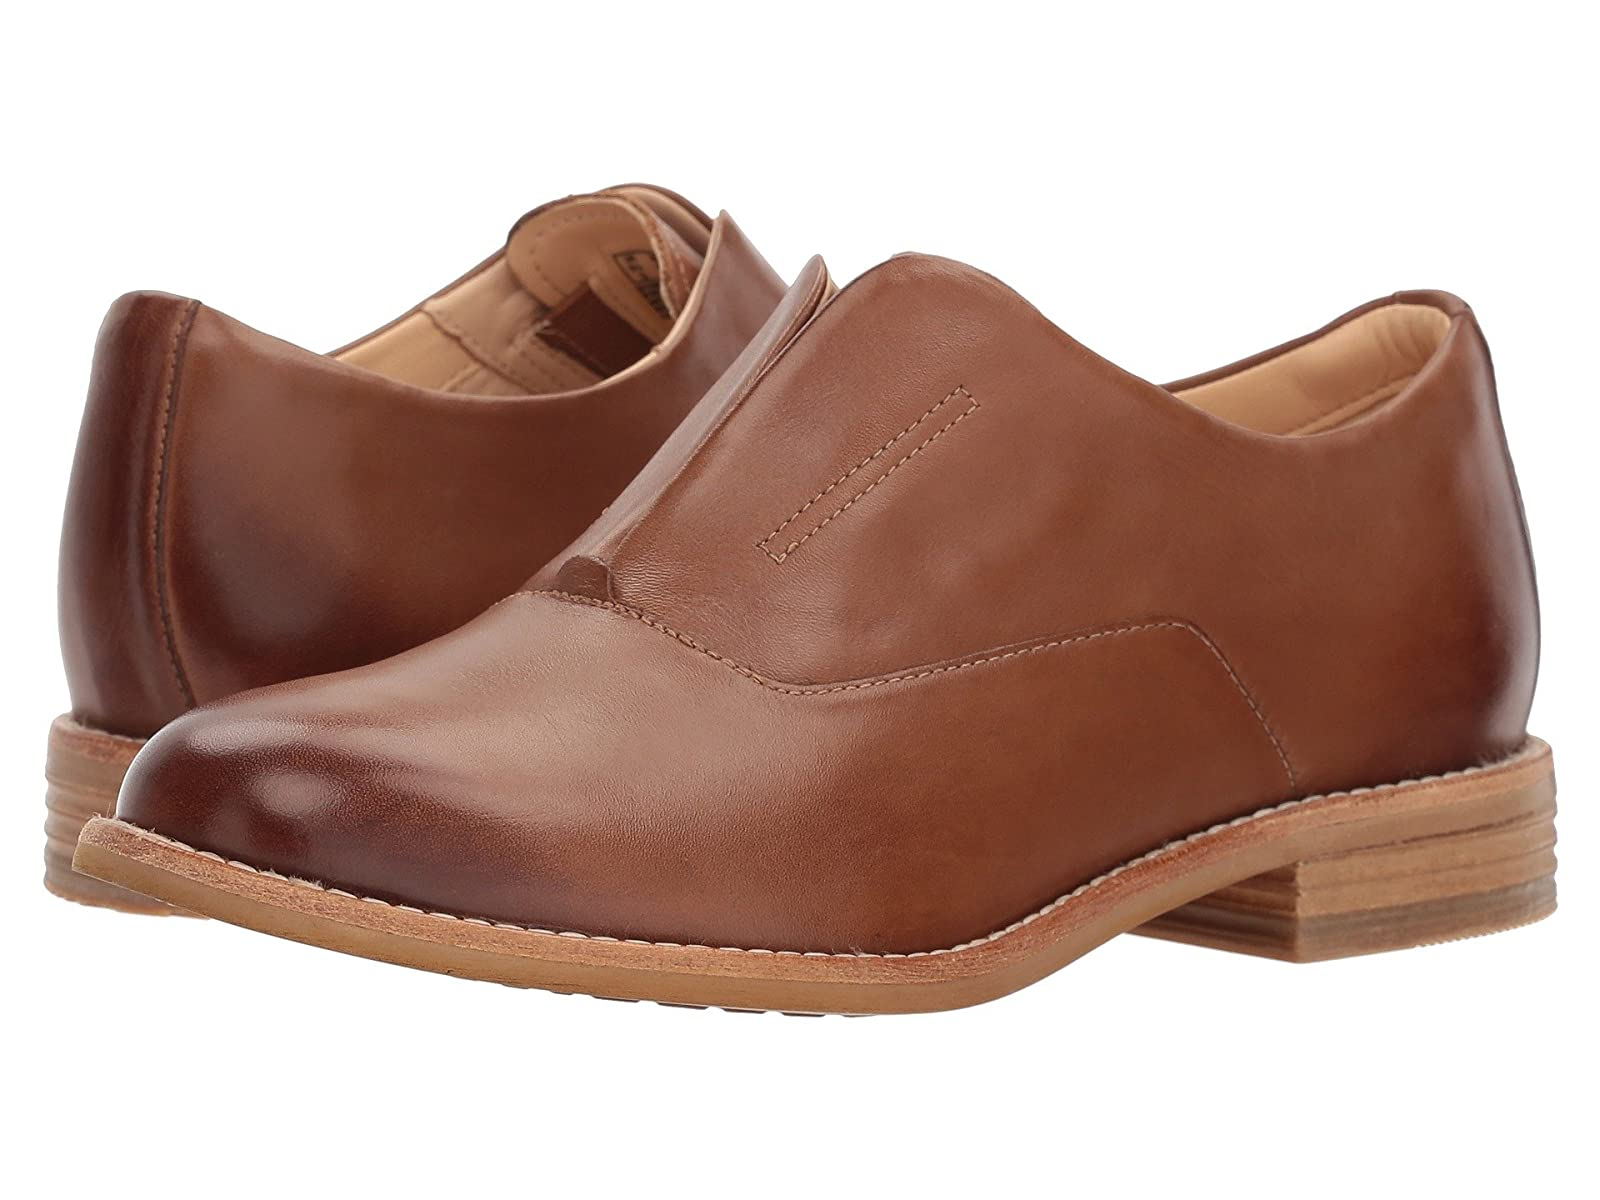 Clarks Edenvale OpalCheap and distinctive eye-catching shoes